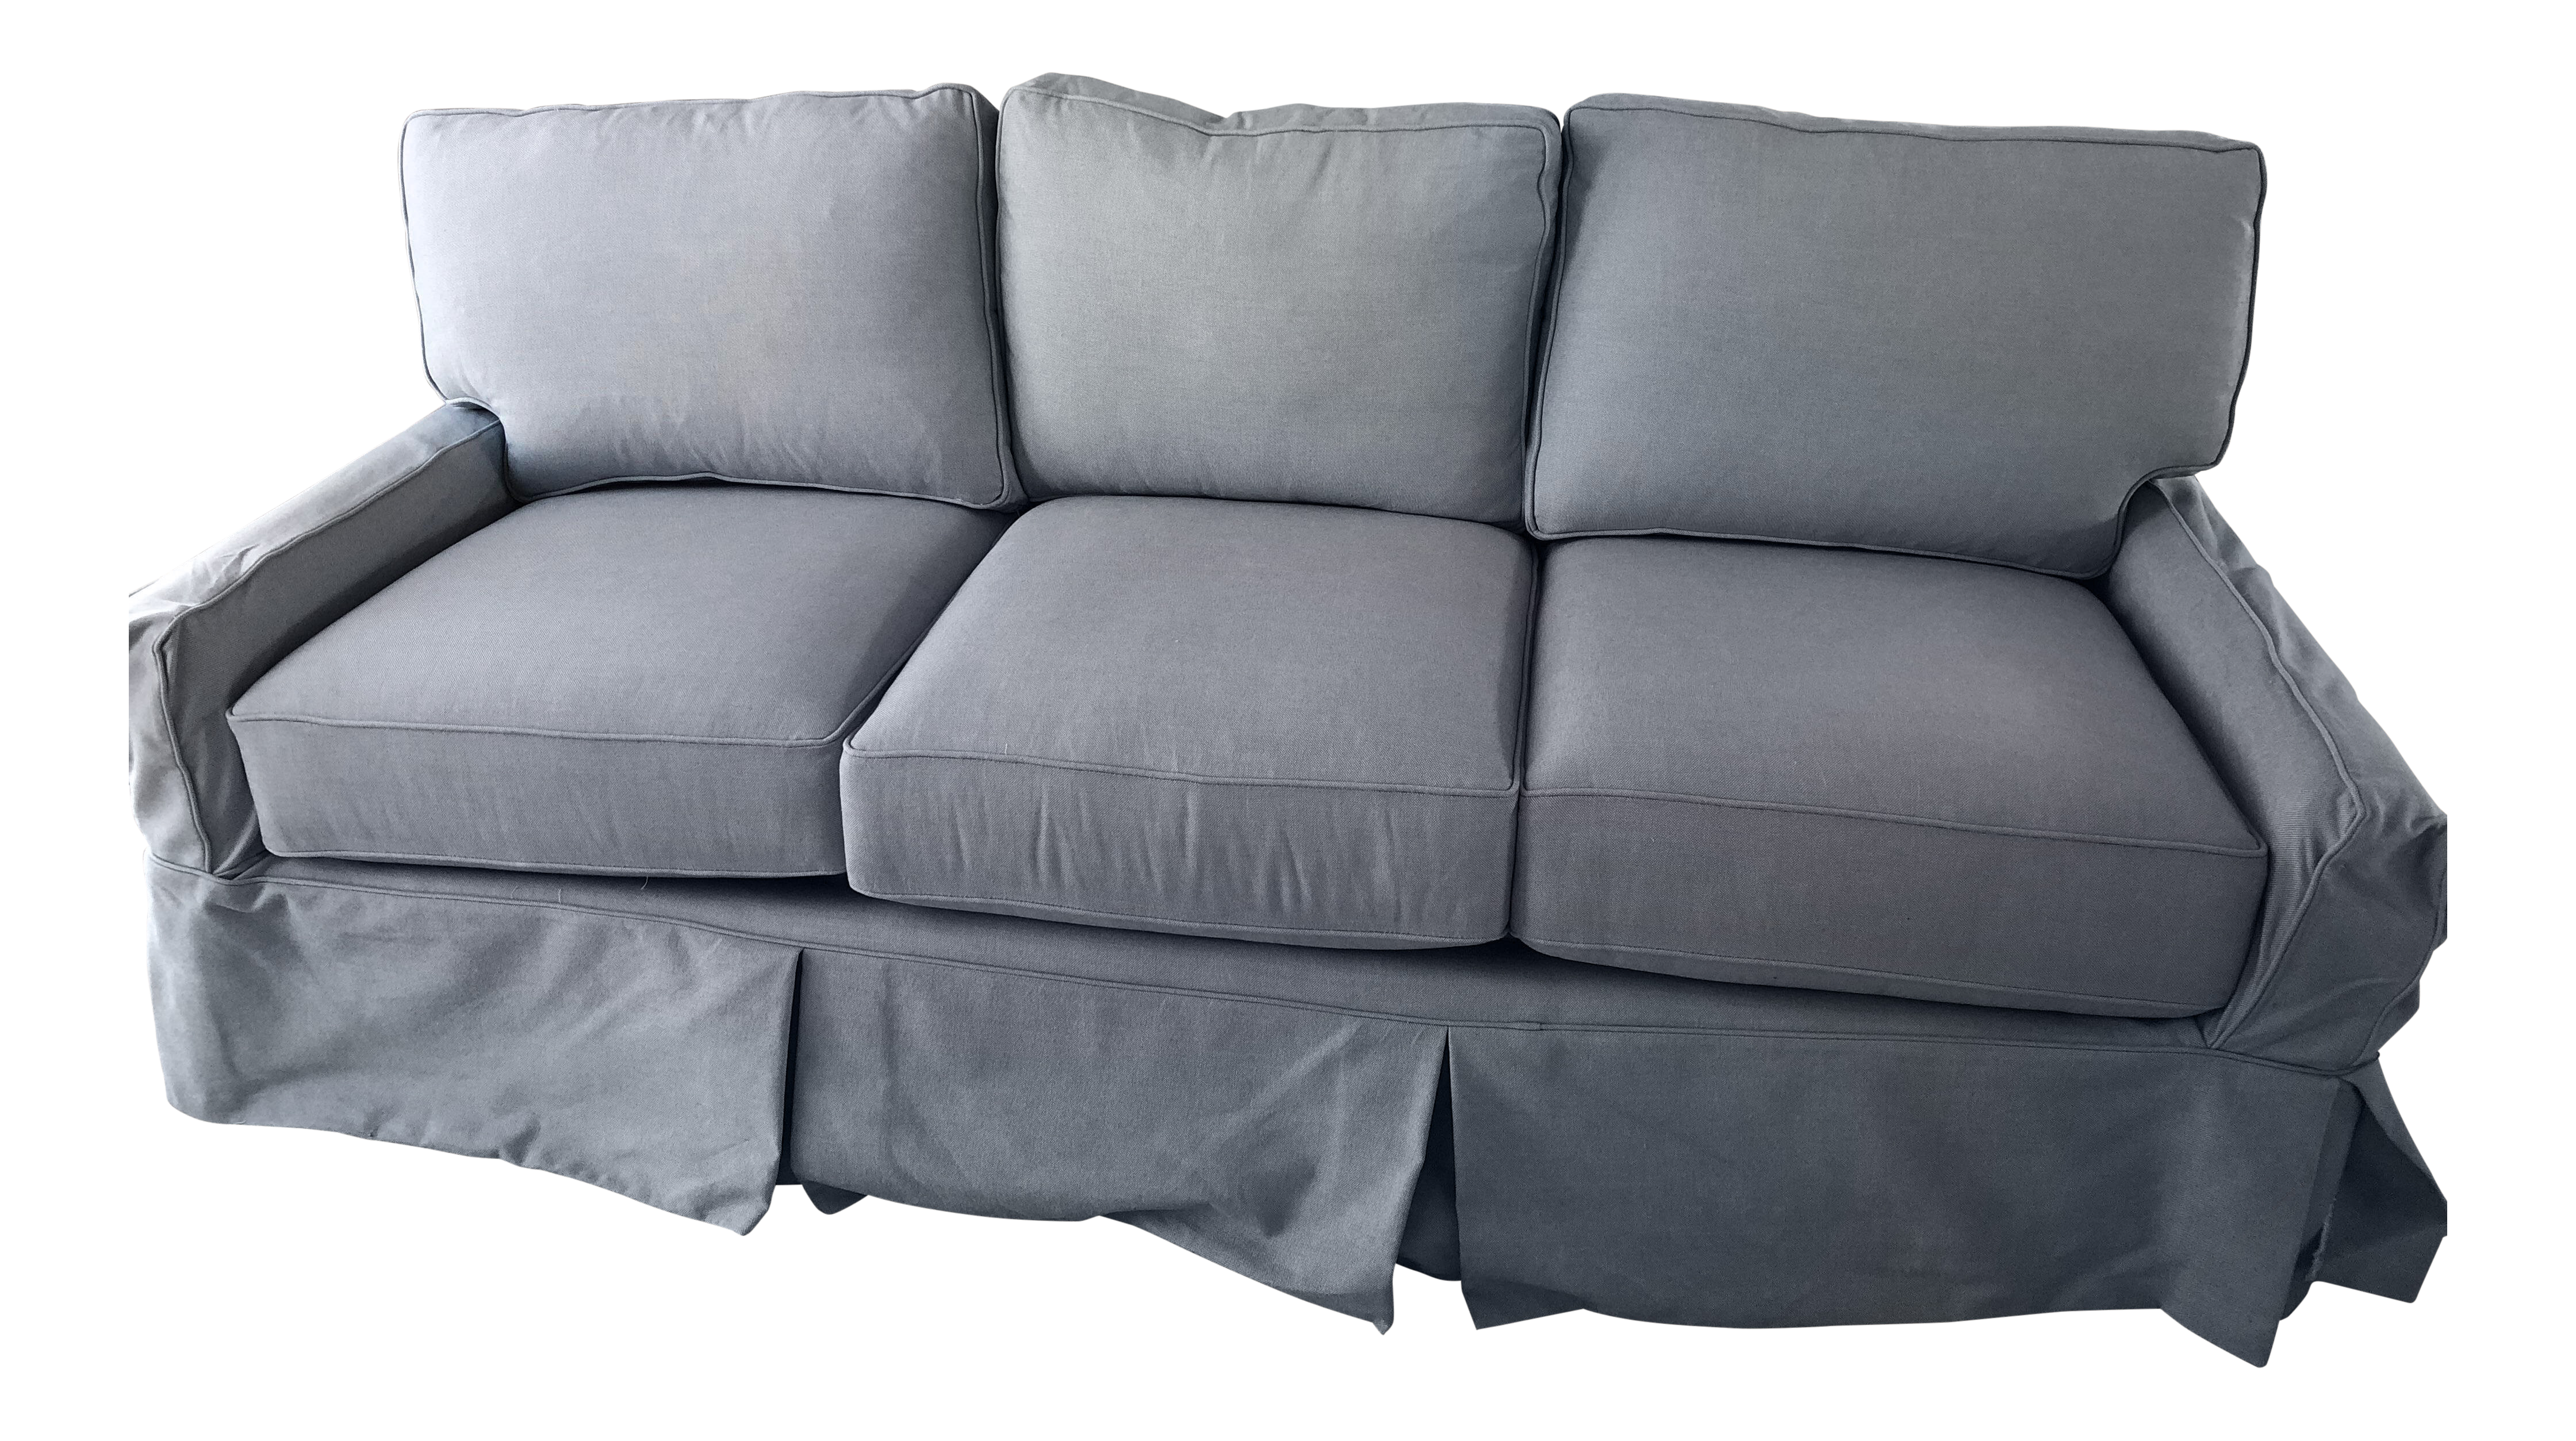 Gently Used Lee Industries Furniture Up To 50 Off At Chairish